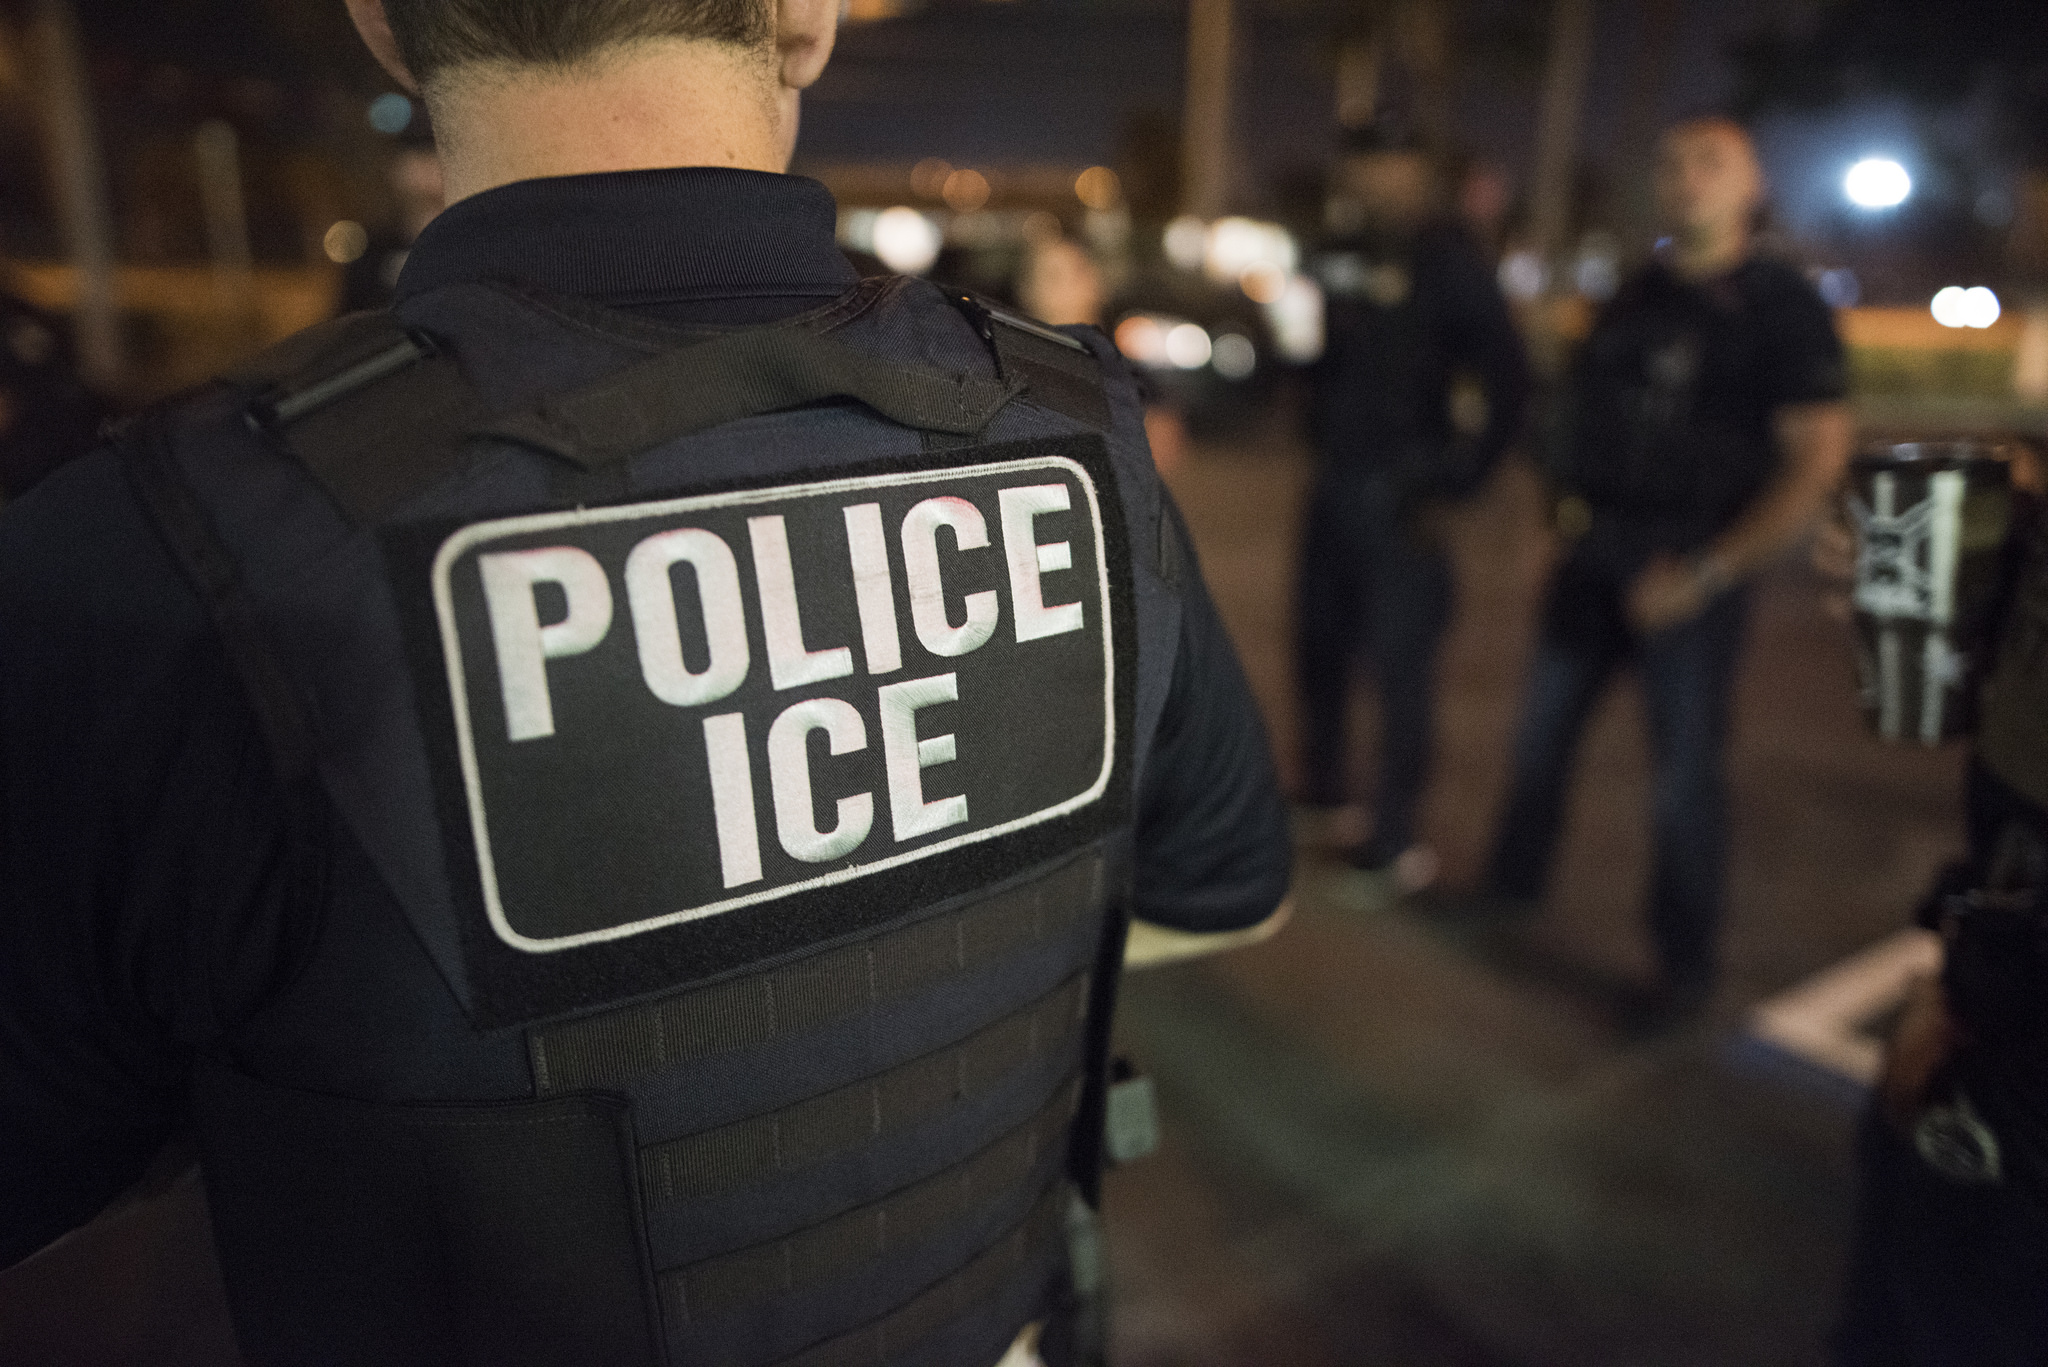 Police ICE